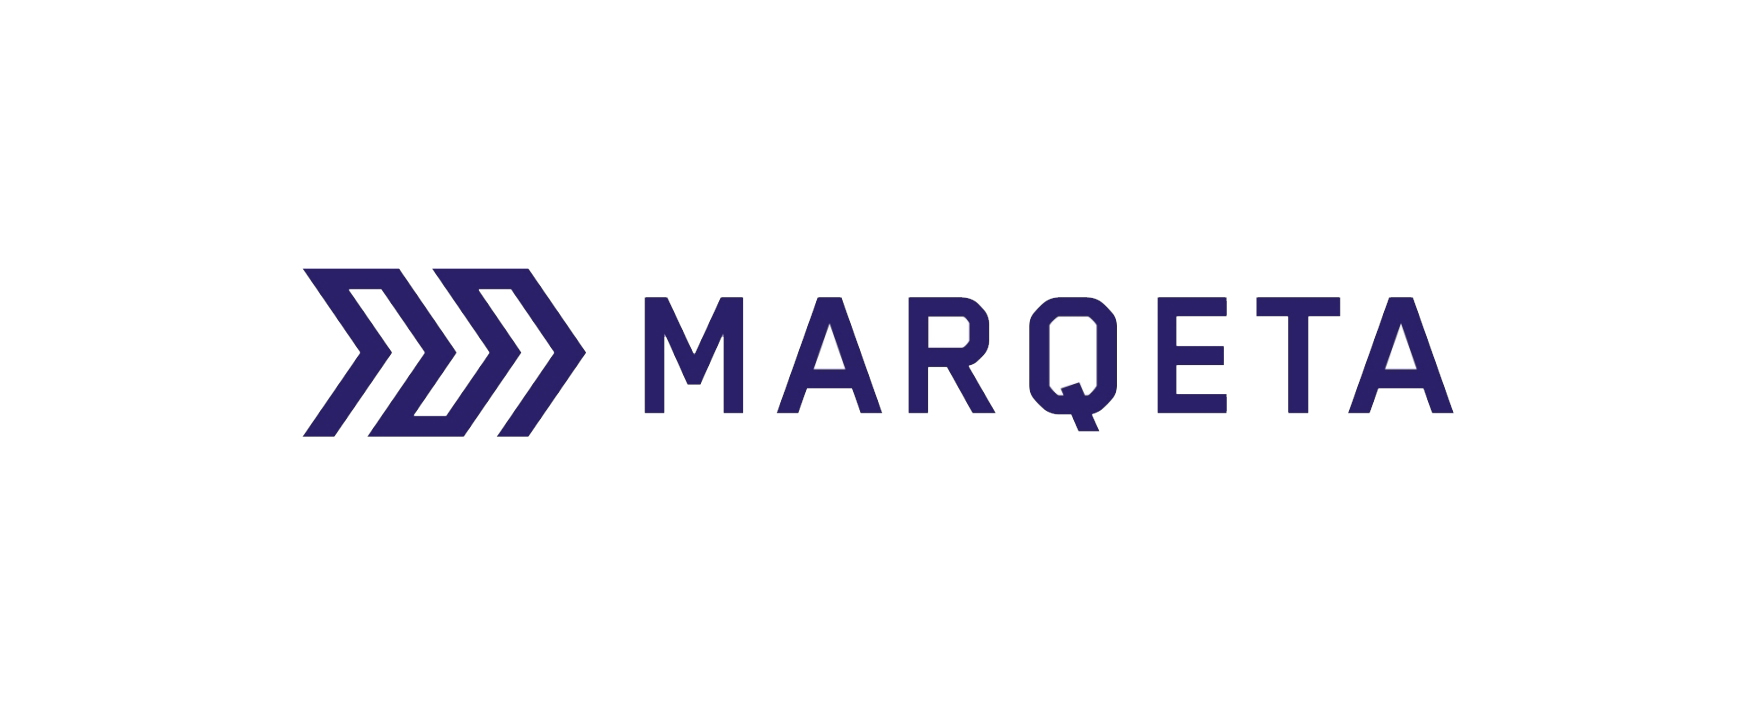 Uber and Marqeta Announce Global Card Issuing Partnership